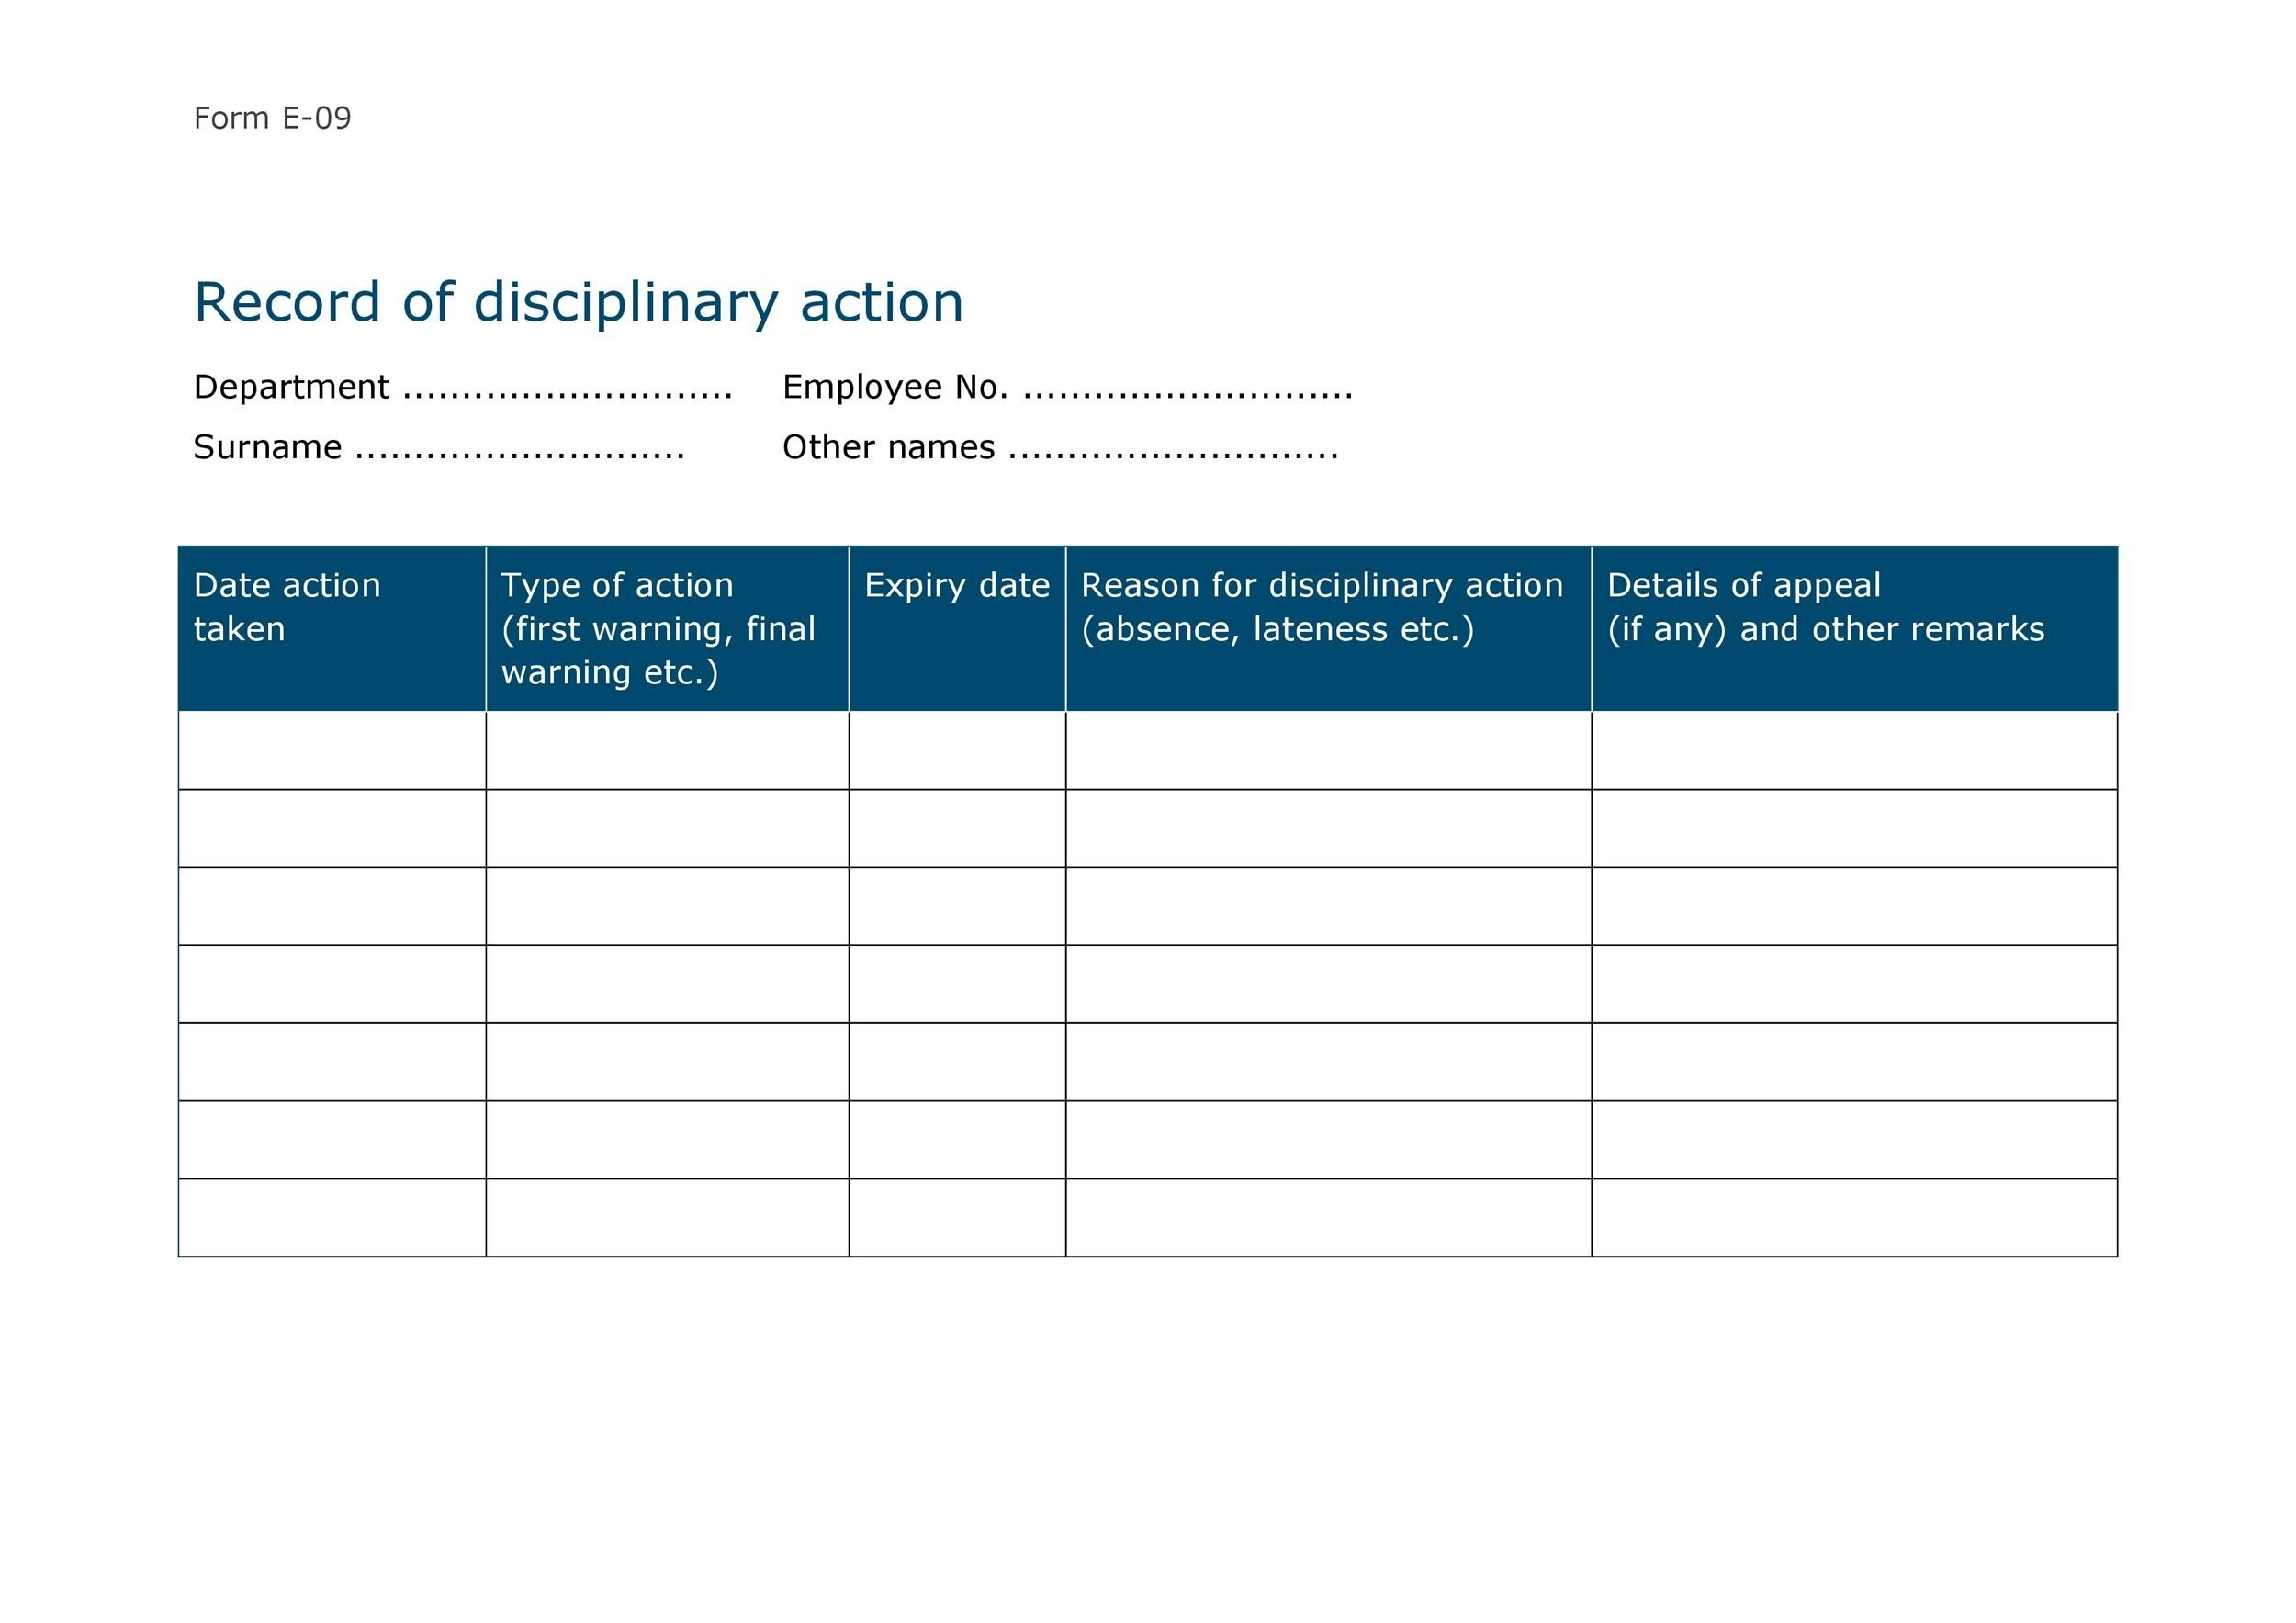 46 Effective Employee Write Up Forms + Disciplinary Action Forms